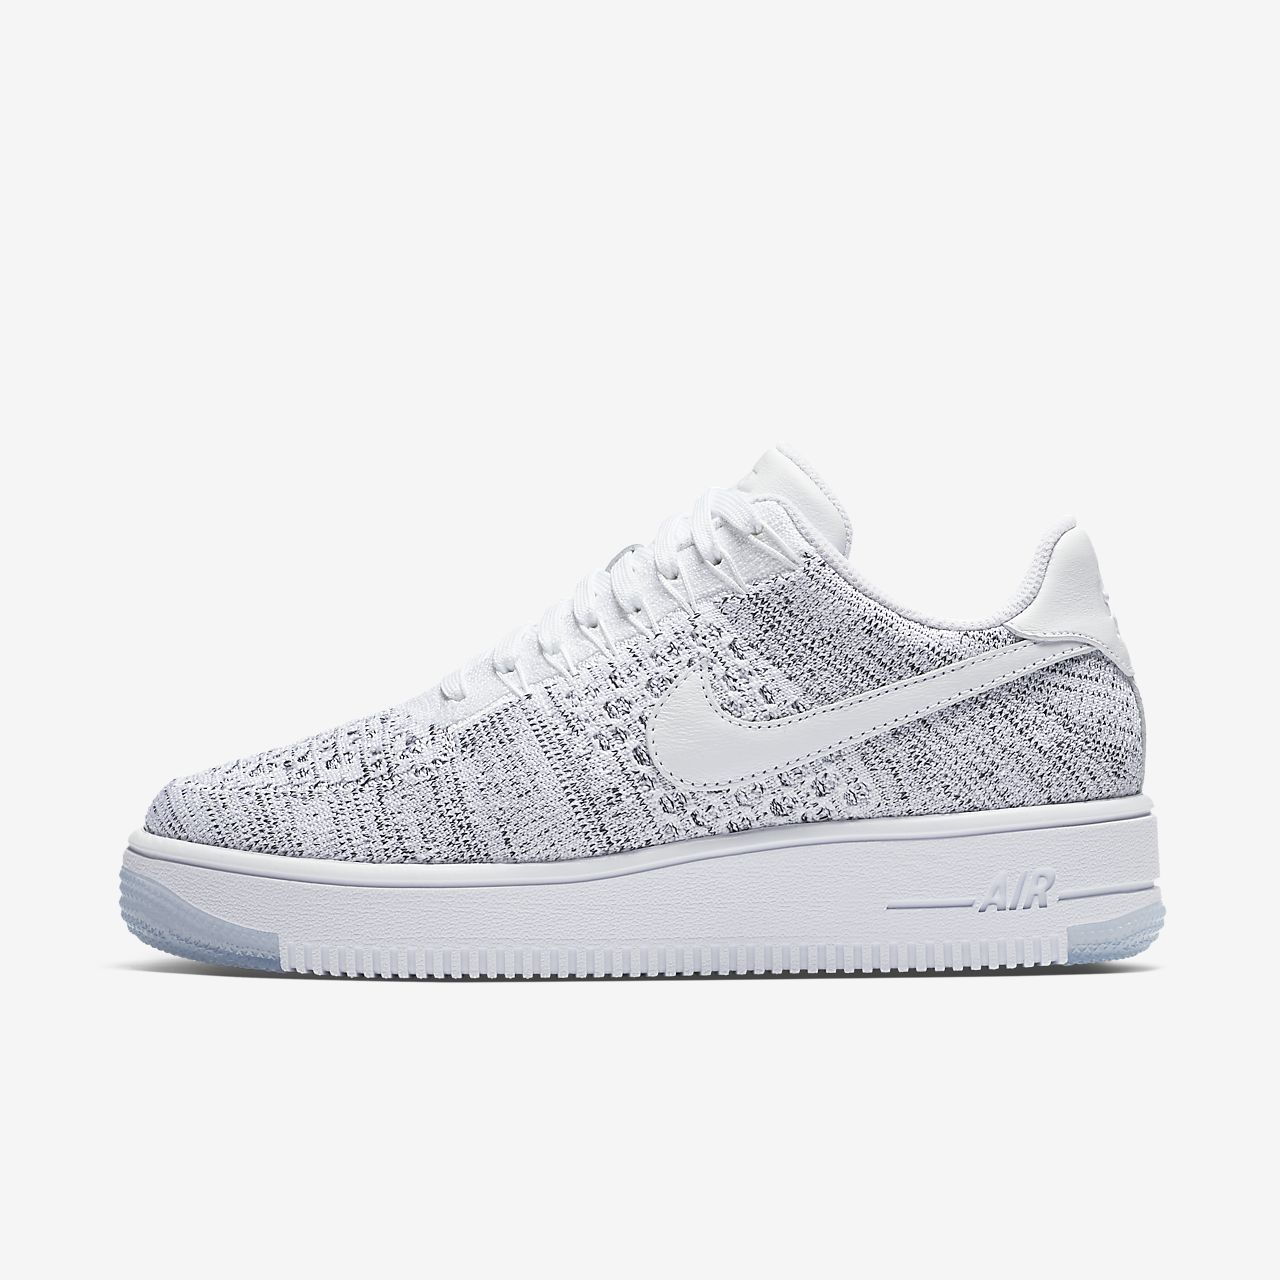 air force 1 flyknit low women's nz